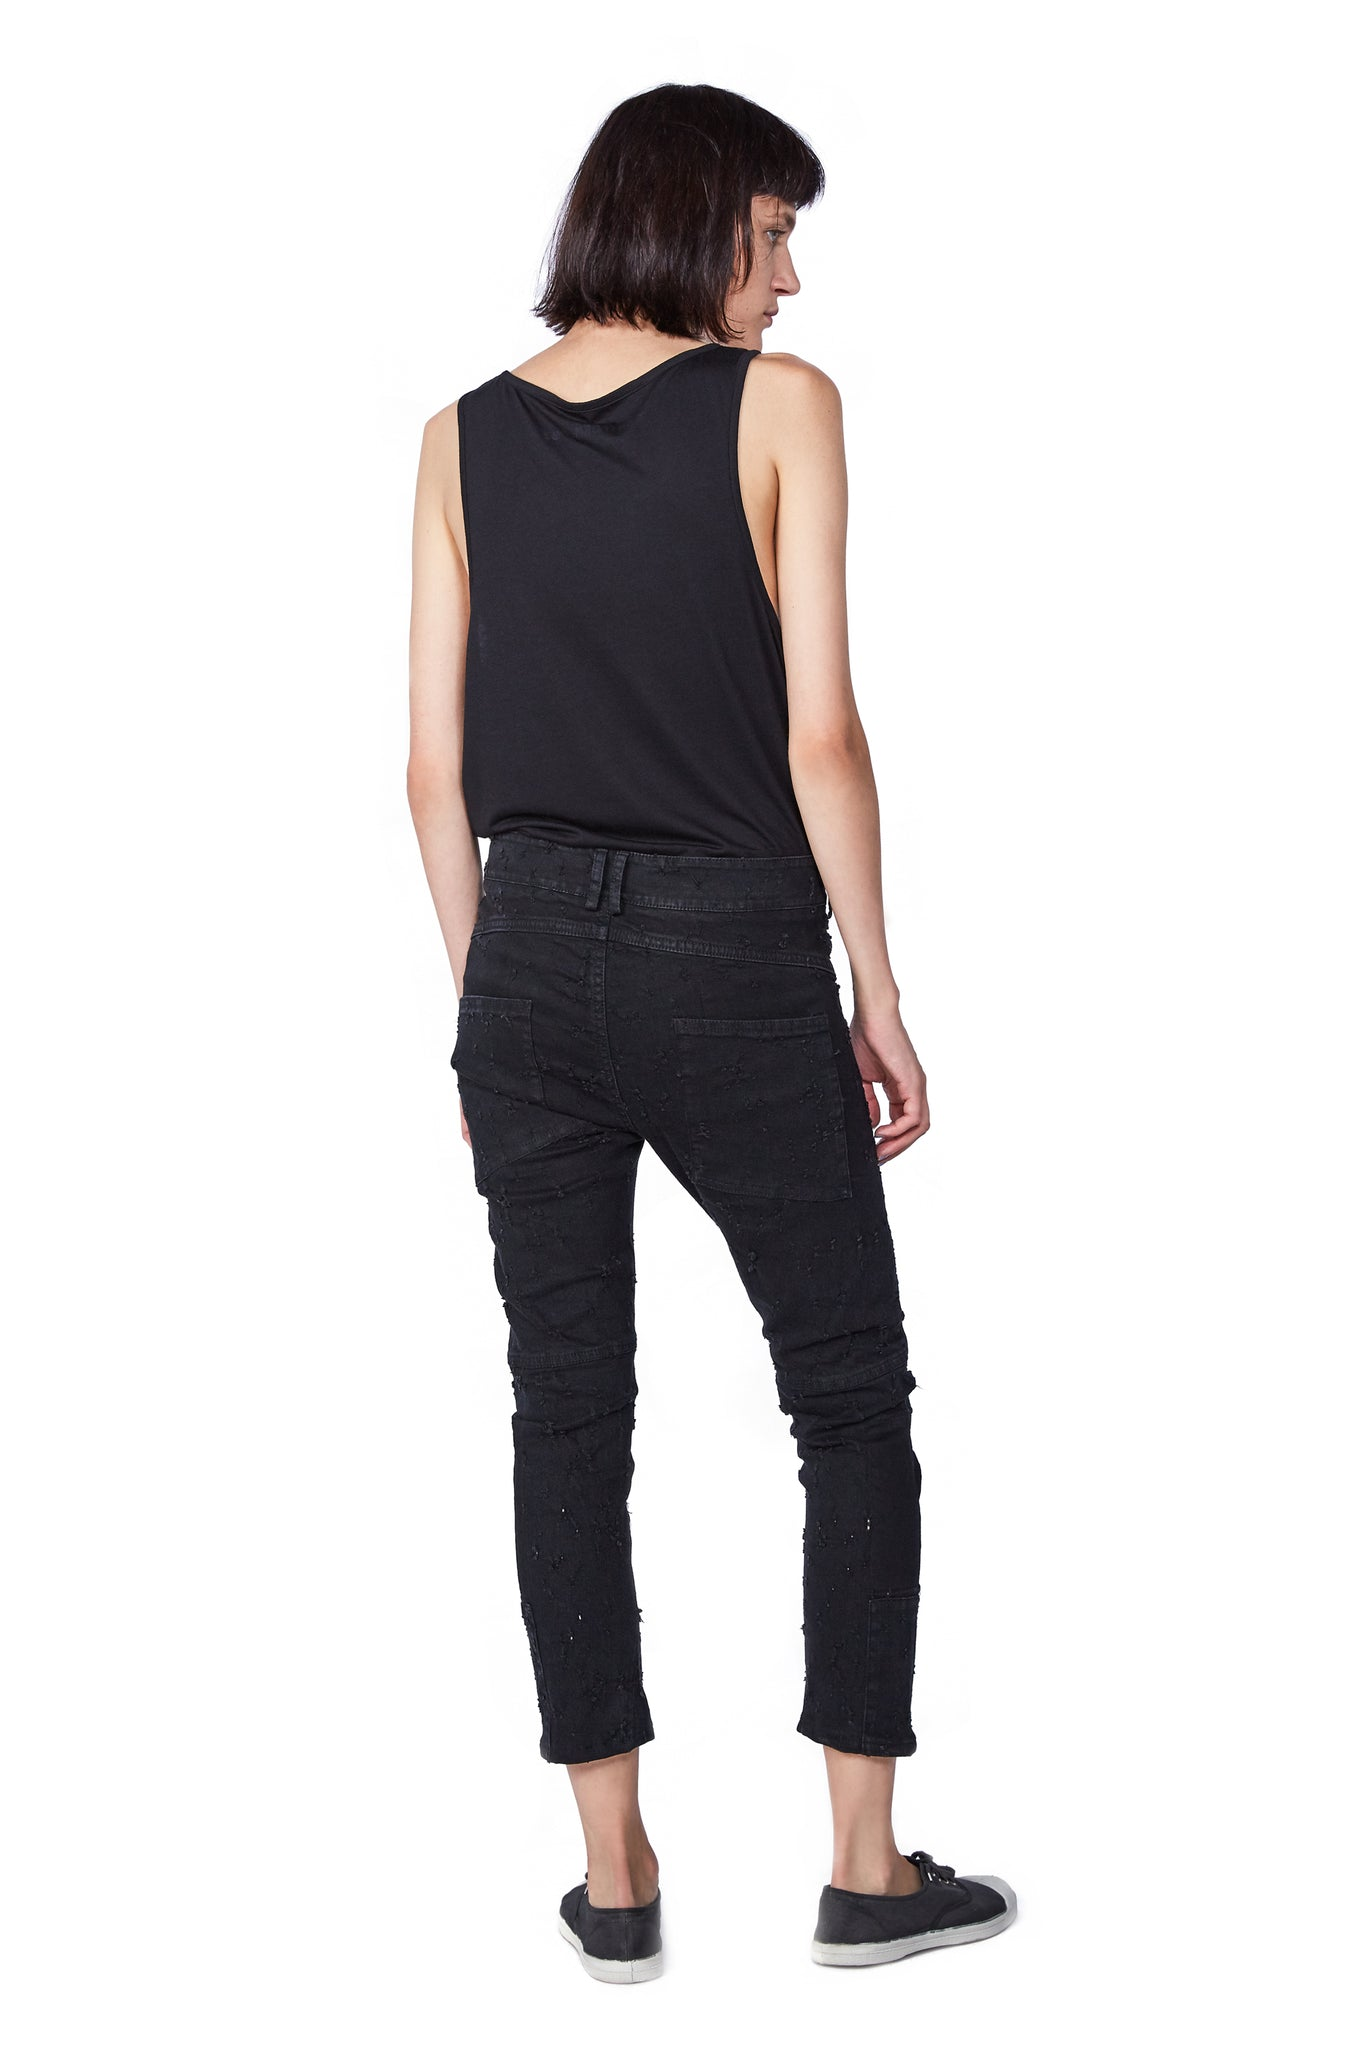 HOLEY Jeans Black - One Wolf